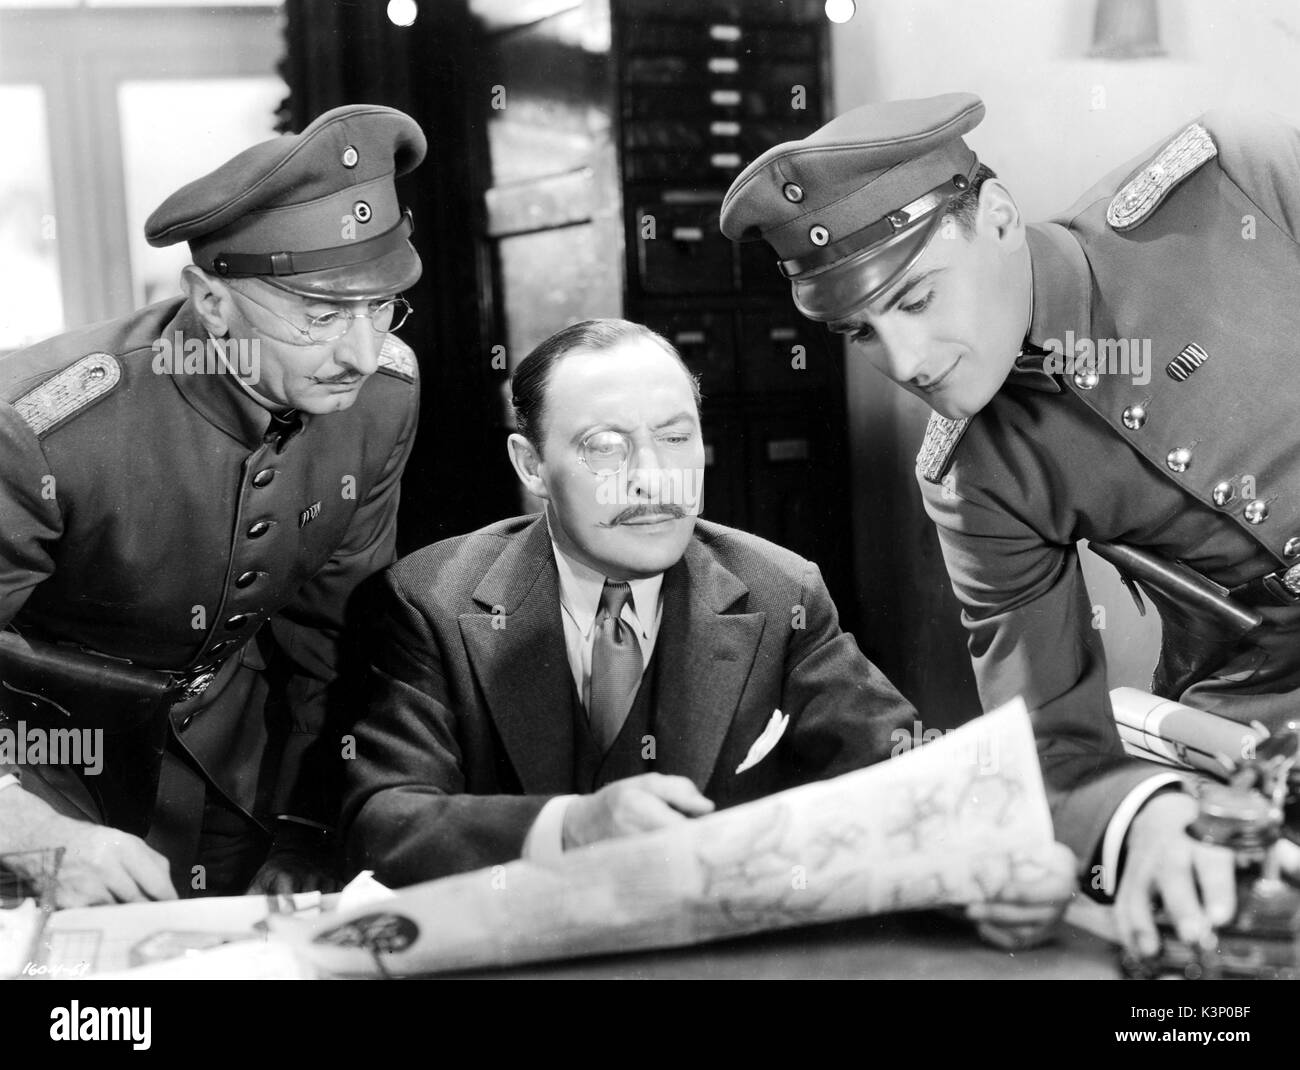 TILL WE MEET AGAIN [US 1936] LIONEL ATWILL [centre]     Date: 1936 - Stock Image